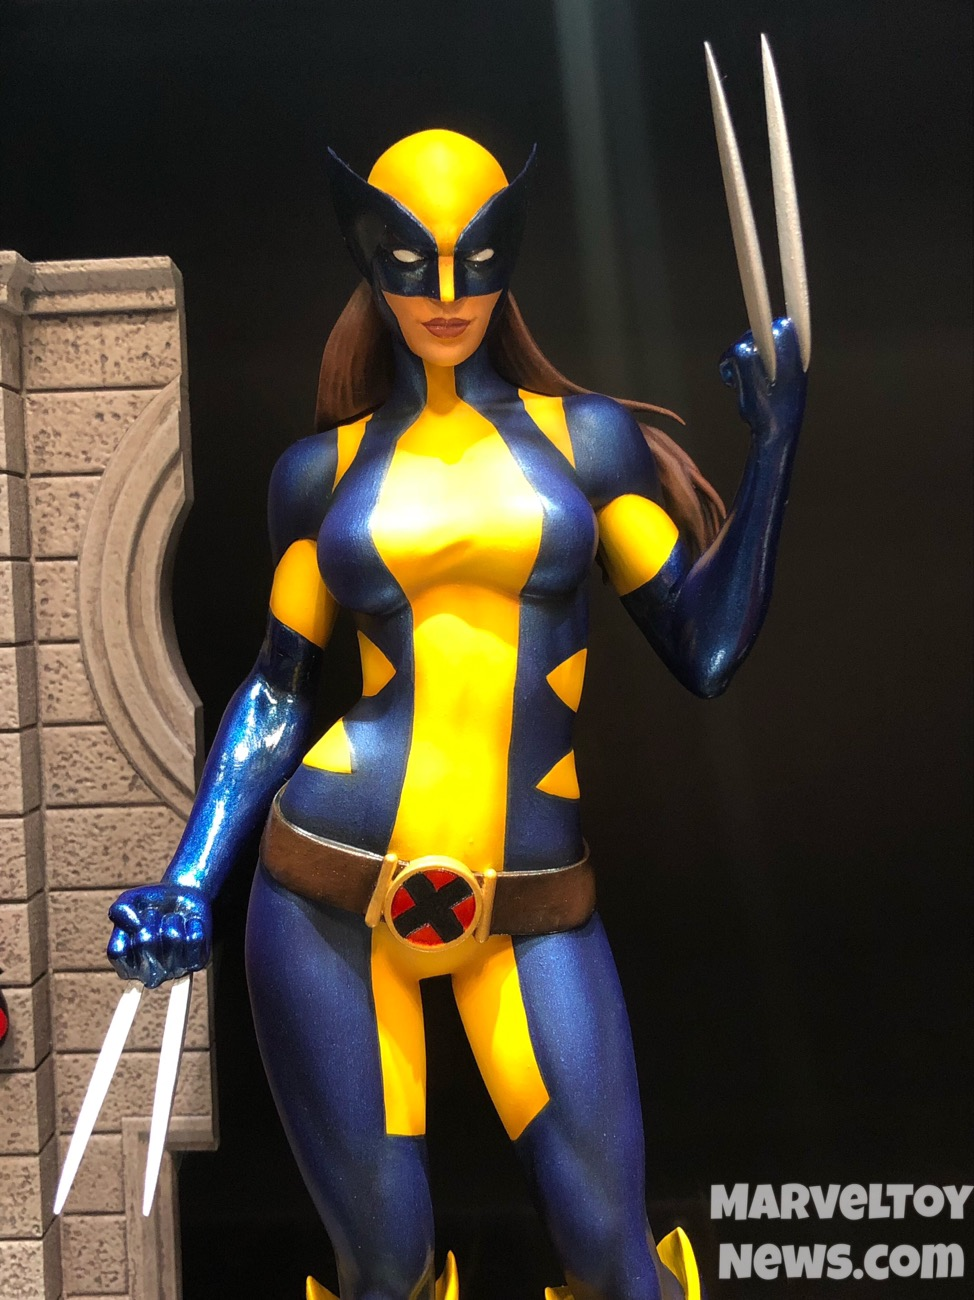 Nycc 2017 marvel gallery x 23 wolverine black widow statues nycc 2017 marvel gallery x 23 statue wolverine voltagebd Images